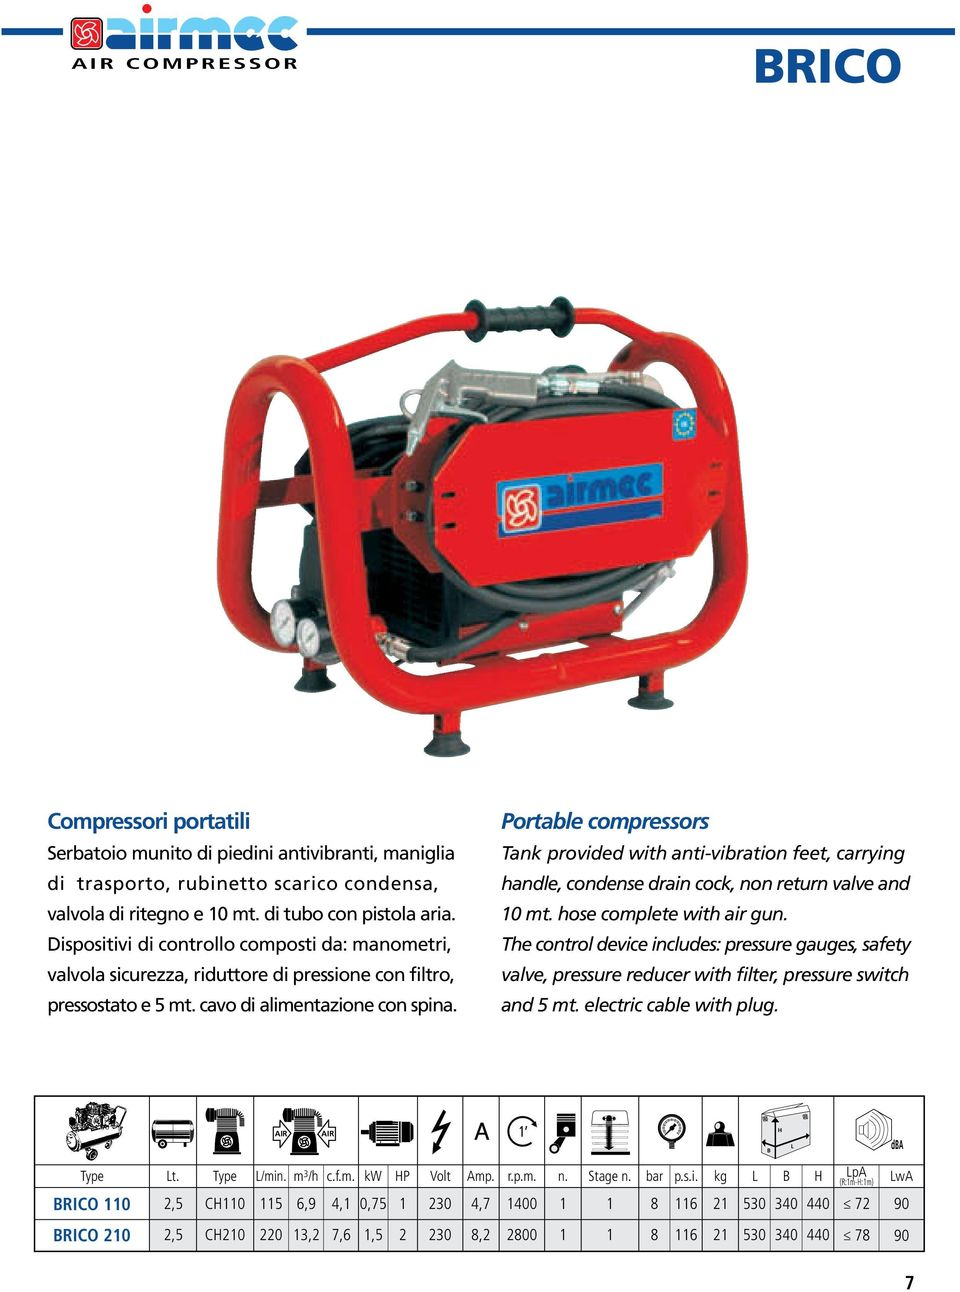 Portable compressors Tank provided with anti-vibration feet, carrying handle, condense drain cock, non return valve and 10 mt. hose complete with air gun.